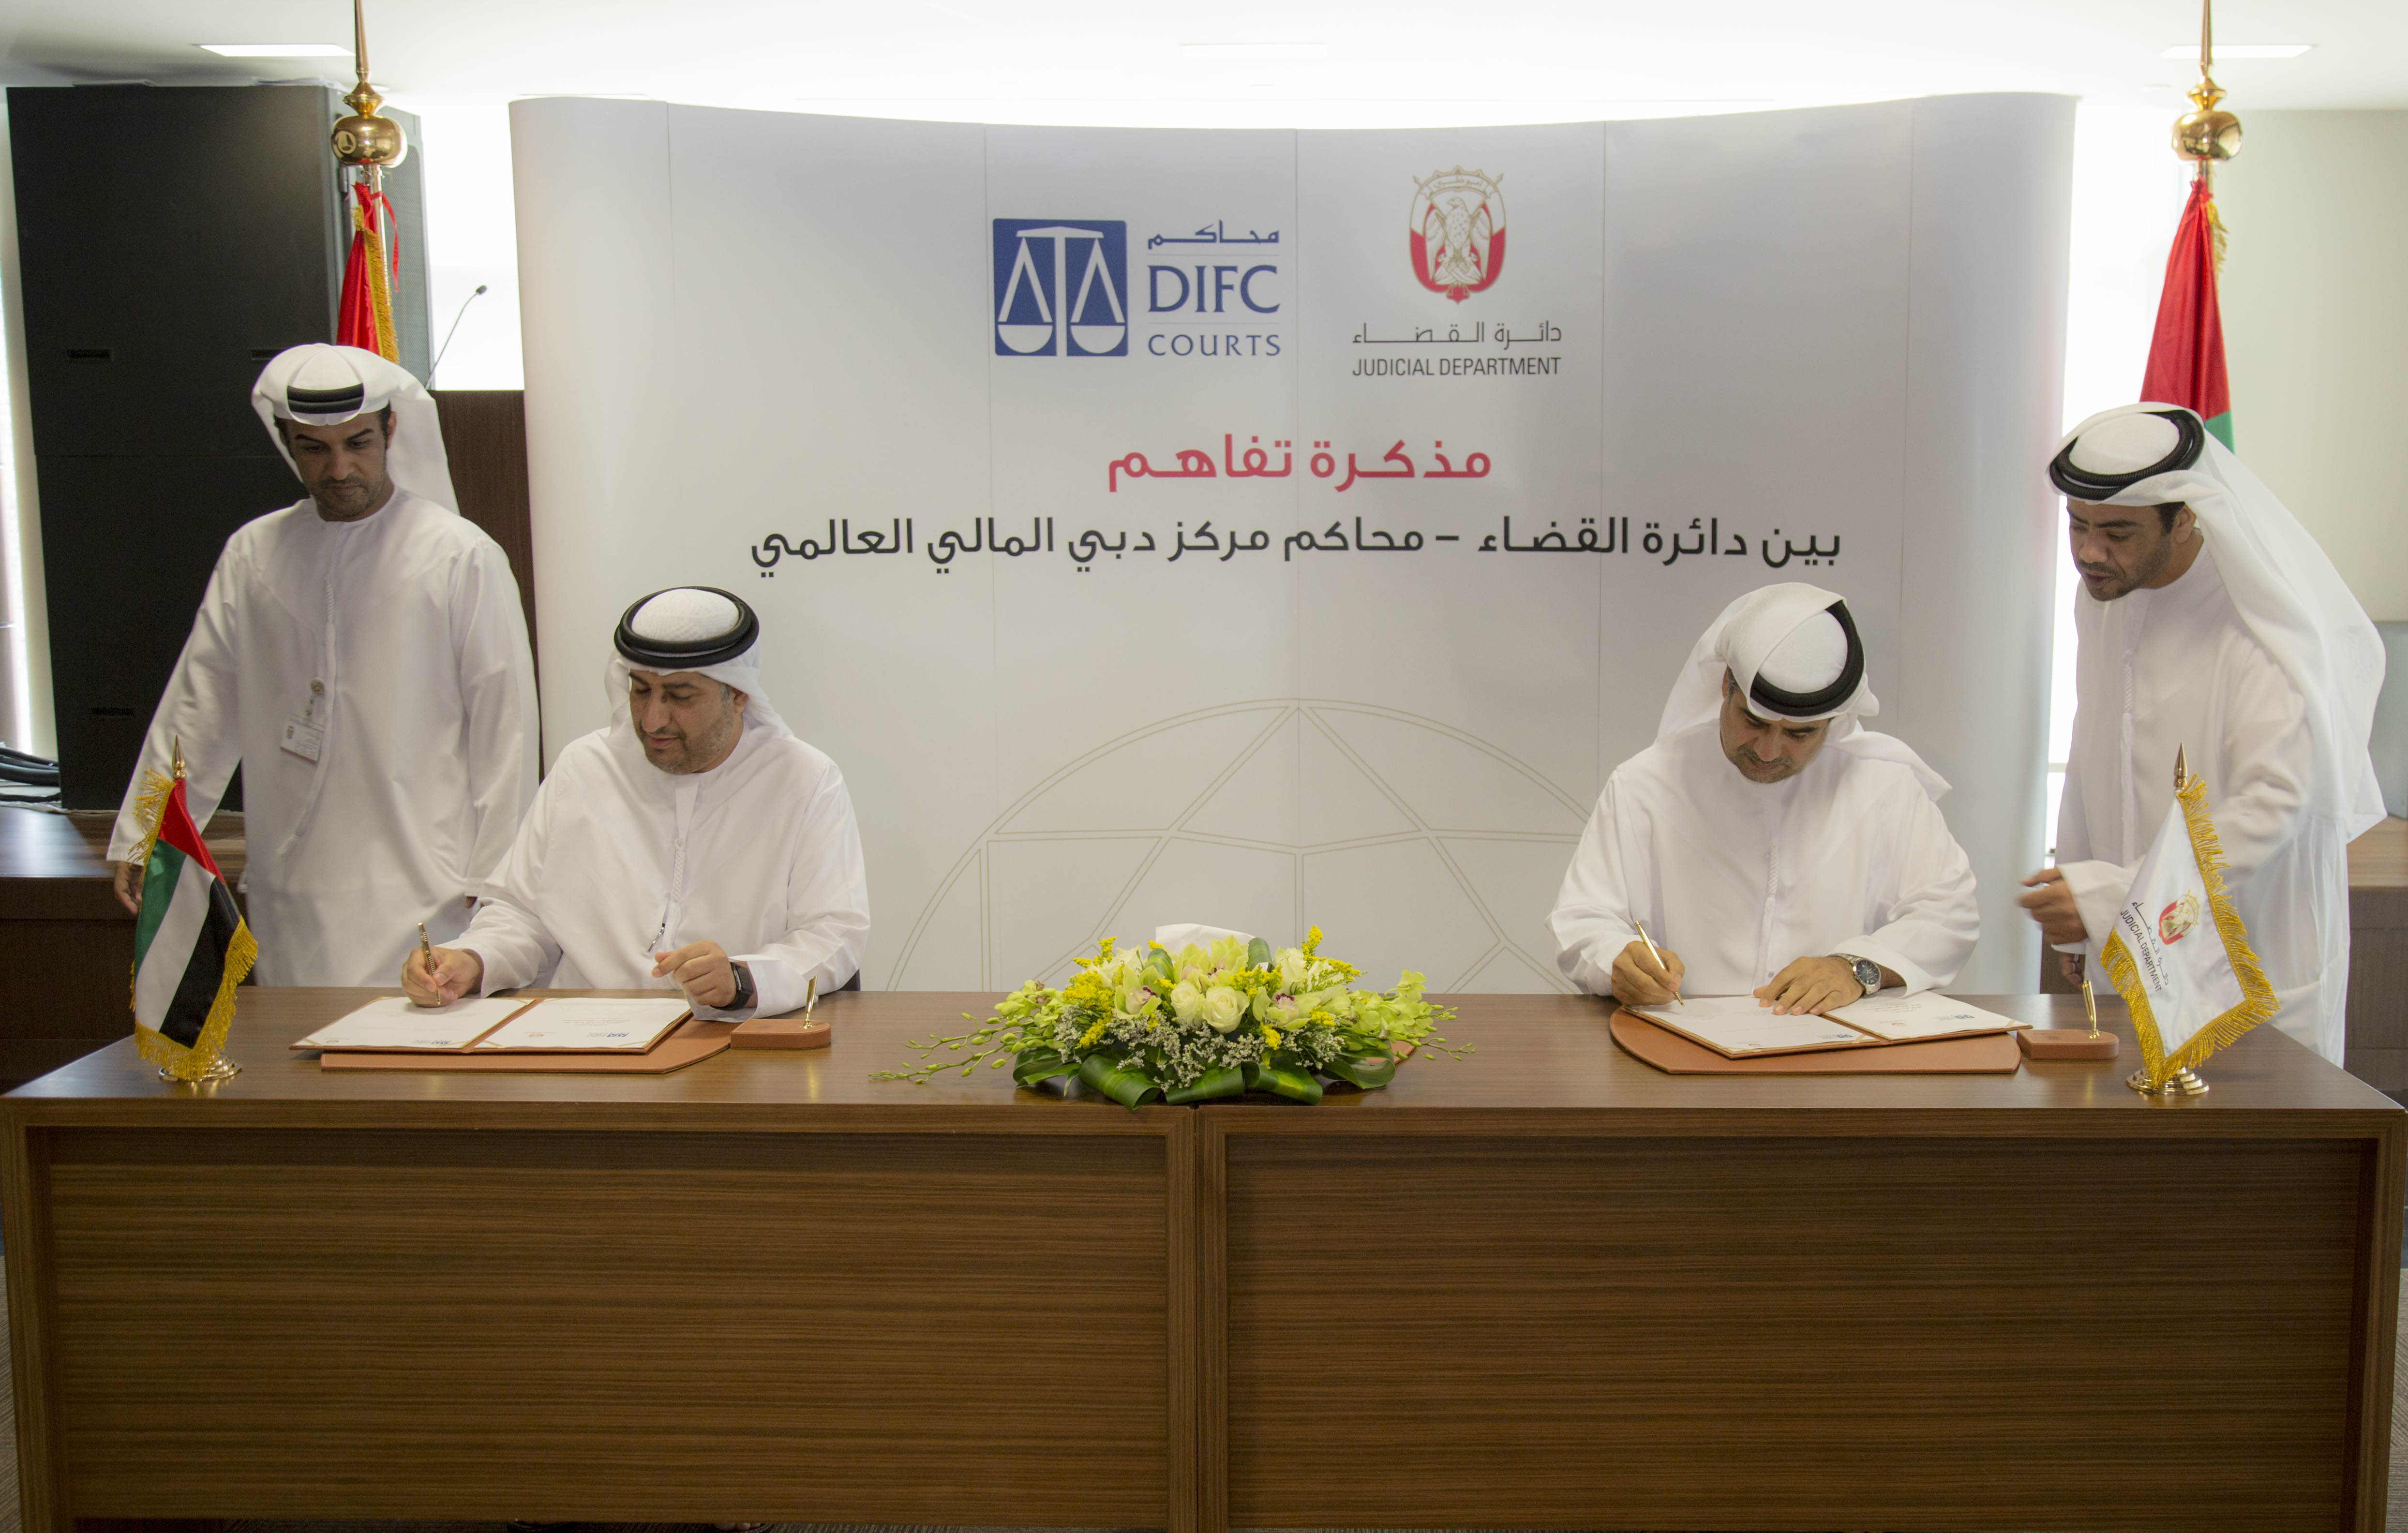 (L-R) HE Omar Juma Al Muhairi, Senior Judge, DIFC Courts and HE Chancellor Yousuf Alabri, Abu Dhabi Judicial Department Undersecretary sign the MoU agreement